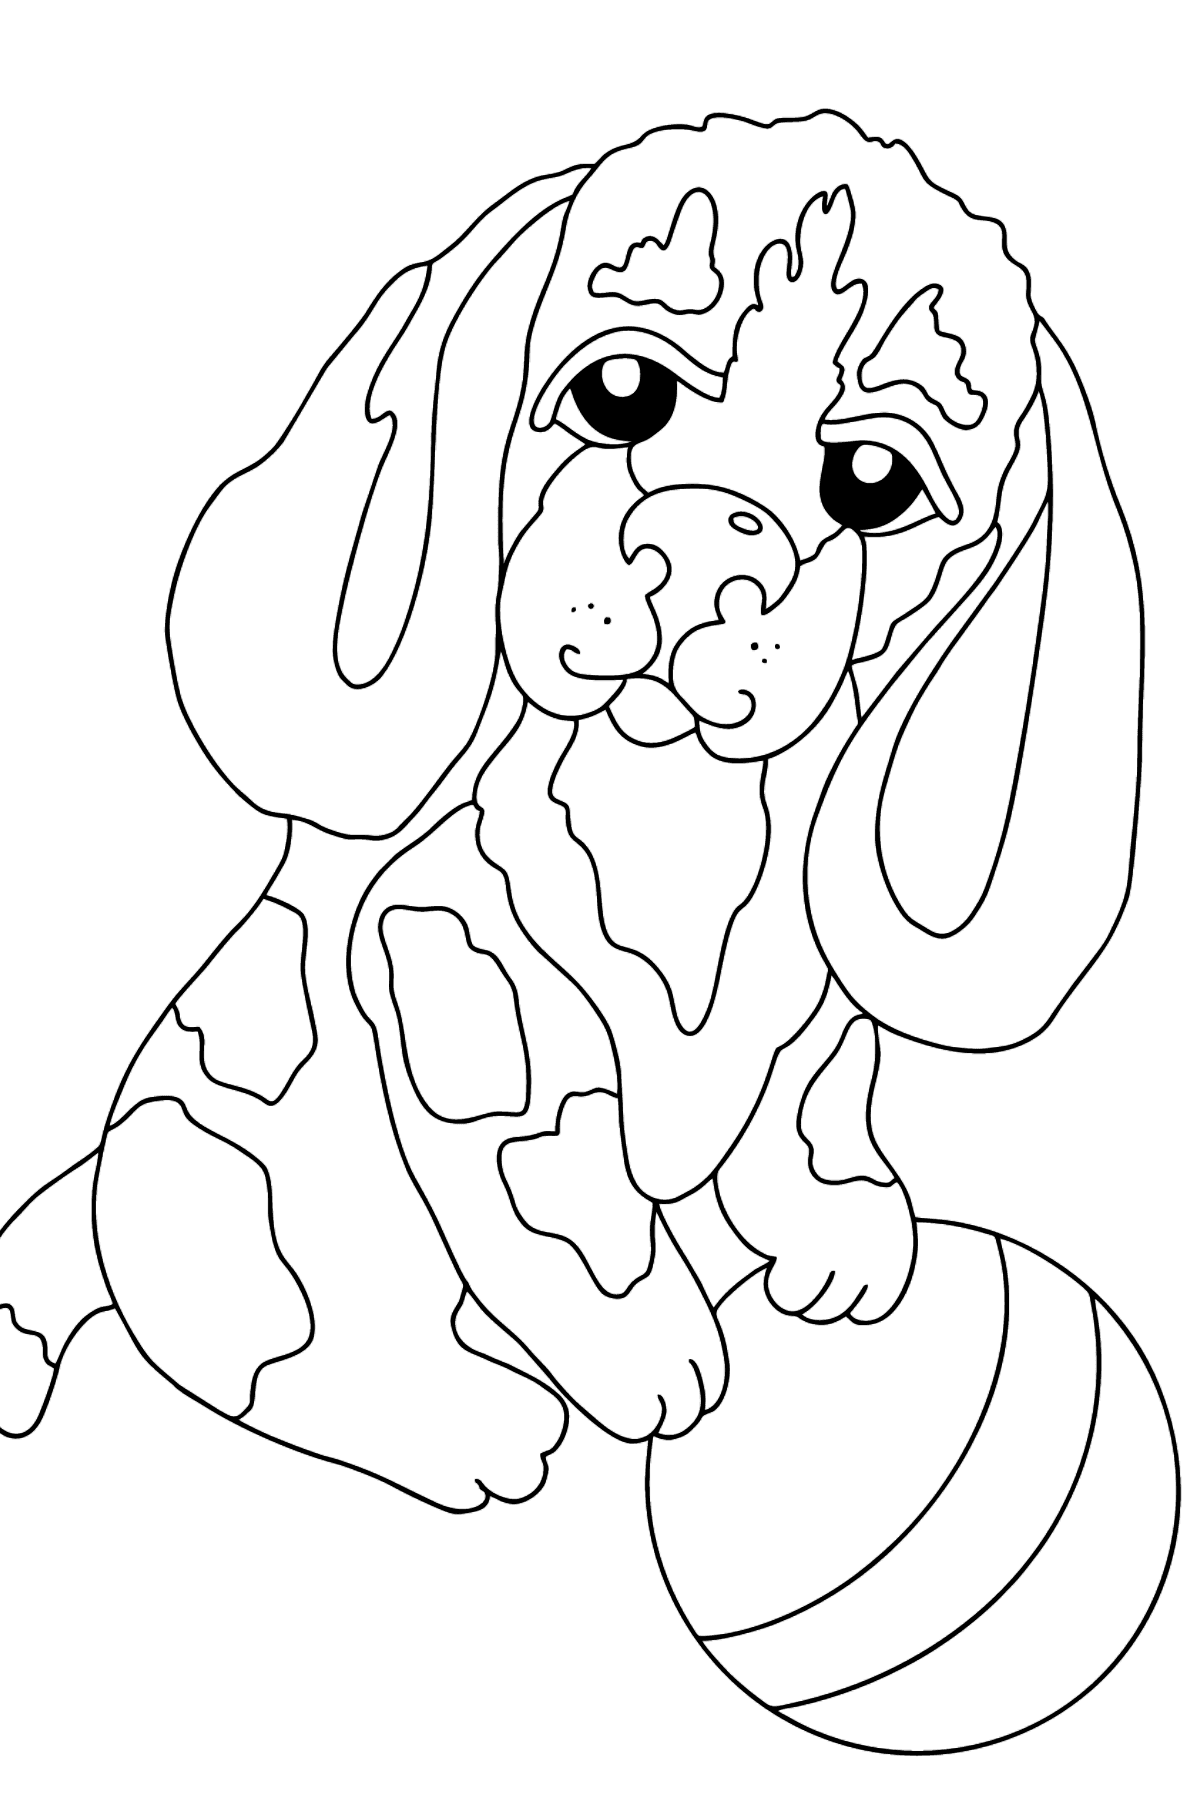 Coloring Page - A Dog with a Ball - Coloring Pages for Kids